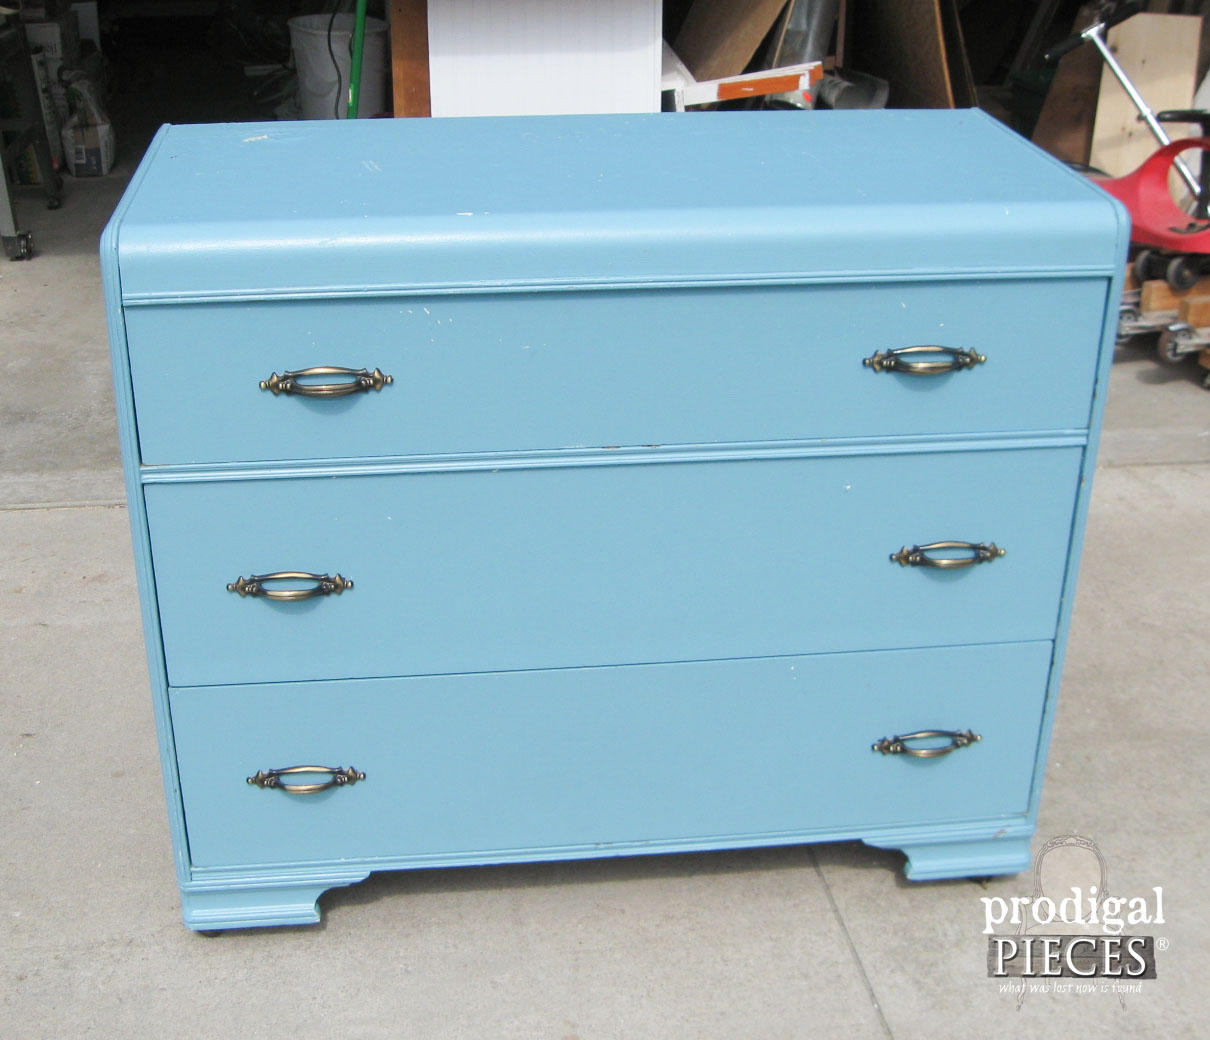 Blue Art Deco Chest Before Makeover by Prodigal Pieces | www.prodigalpieces.com